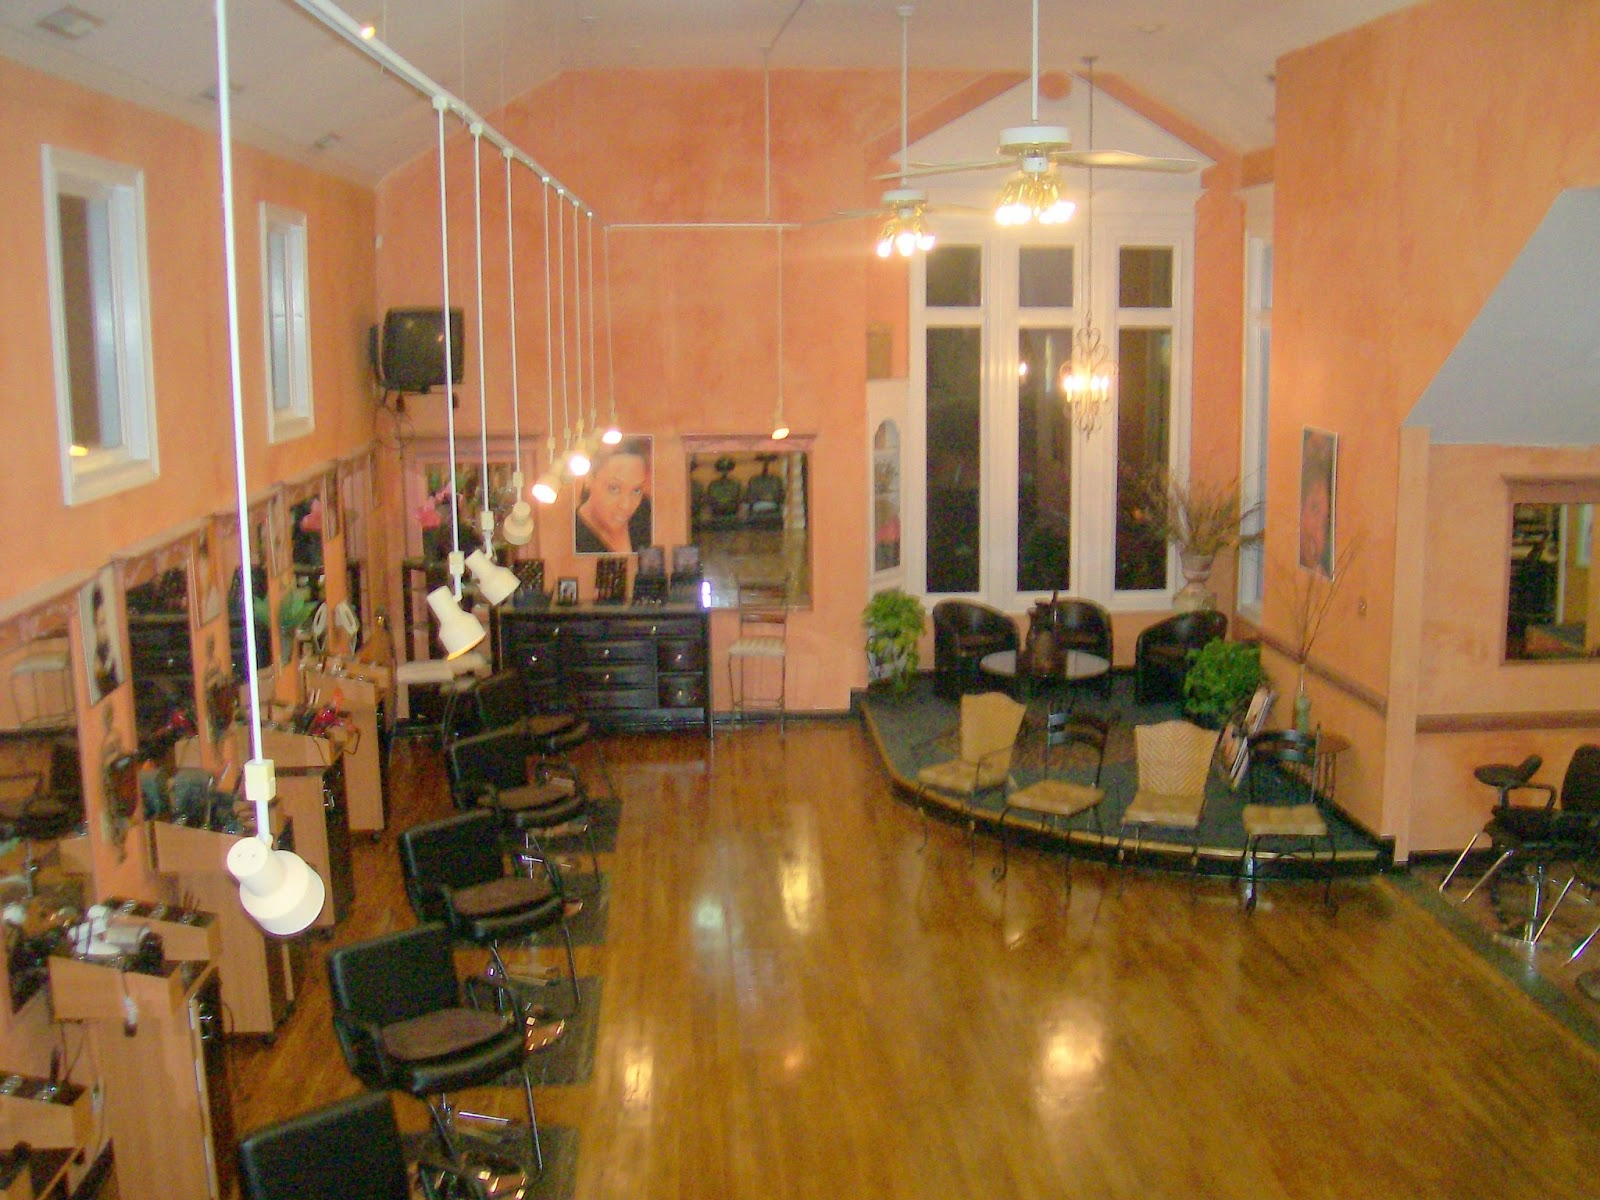 What's New At Donjanelle: Salon... Booth Rental Or Commission?